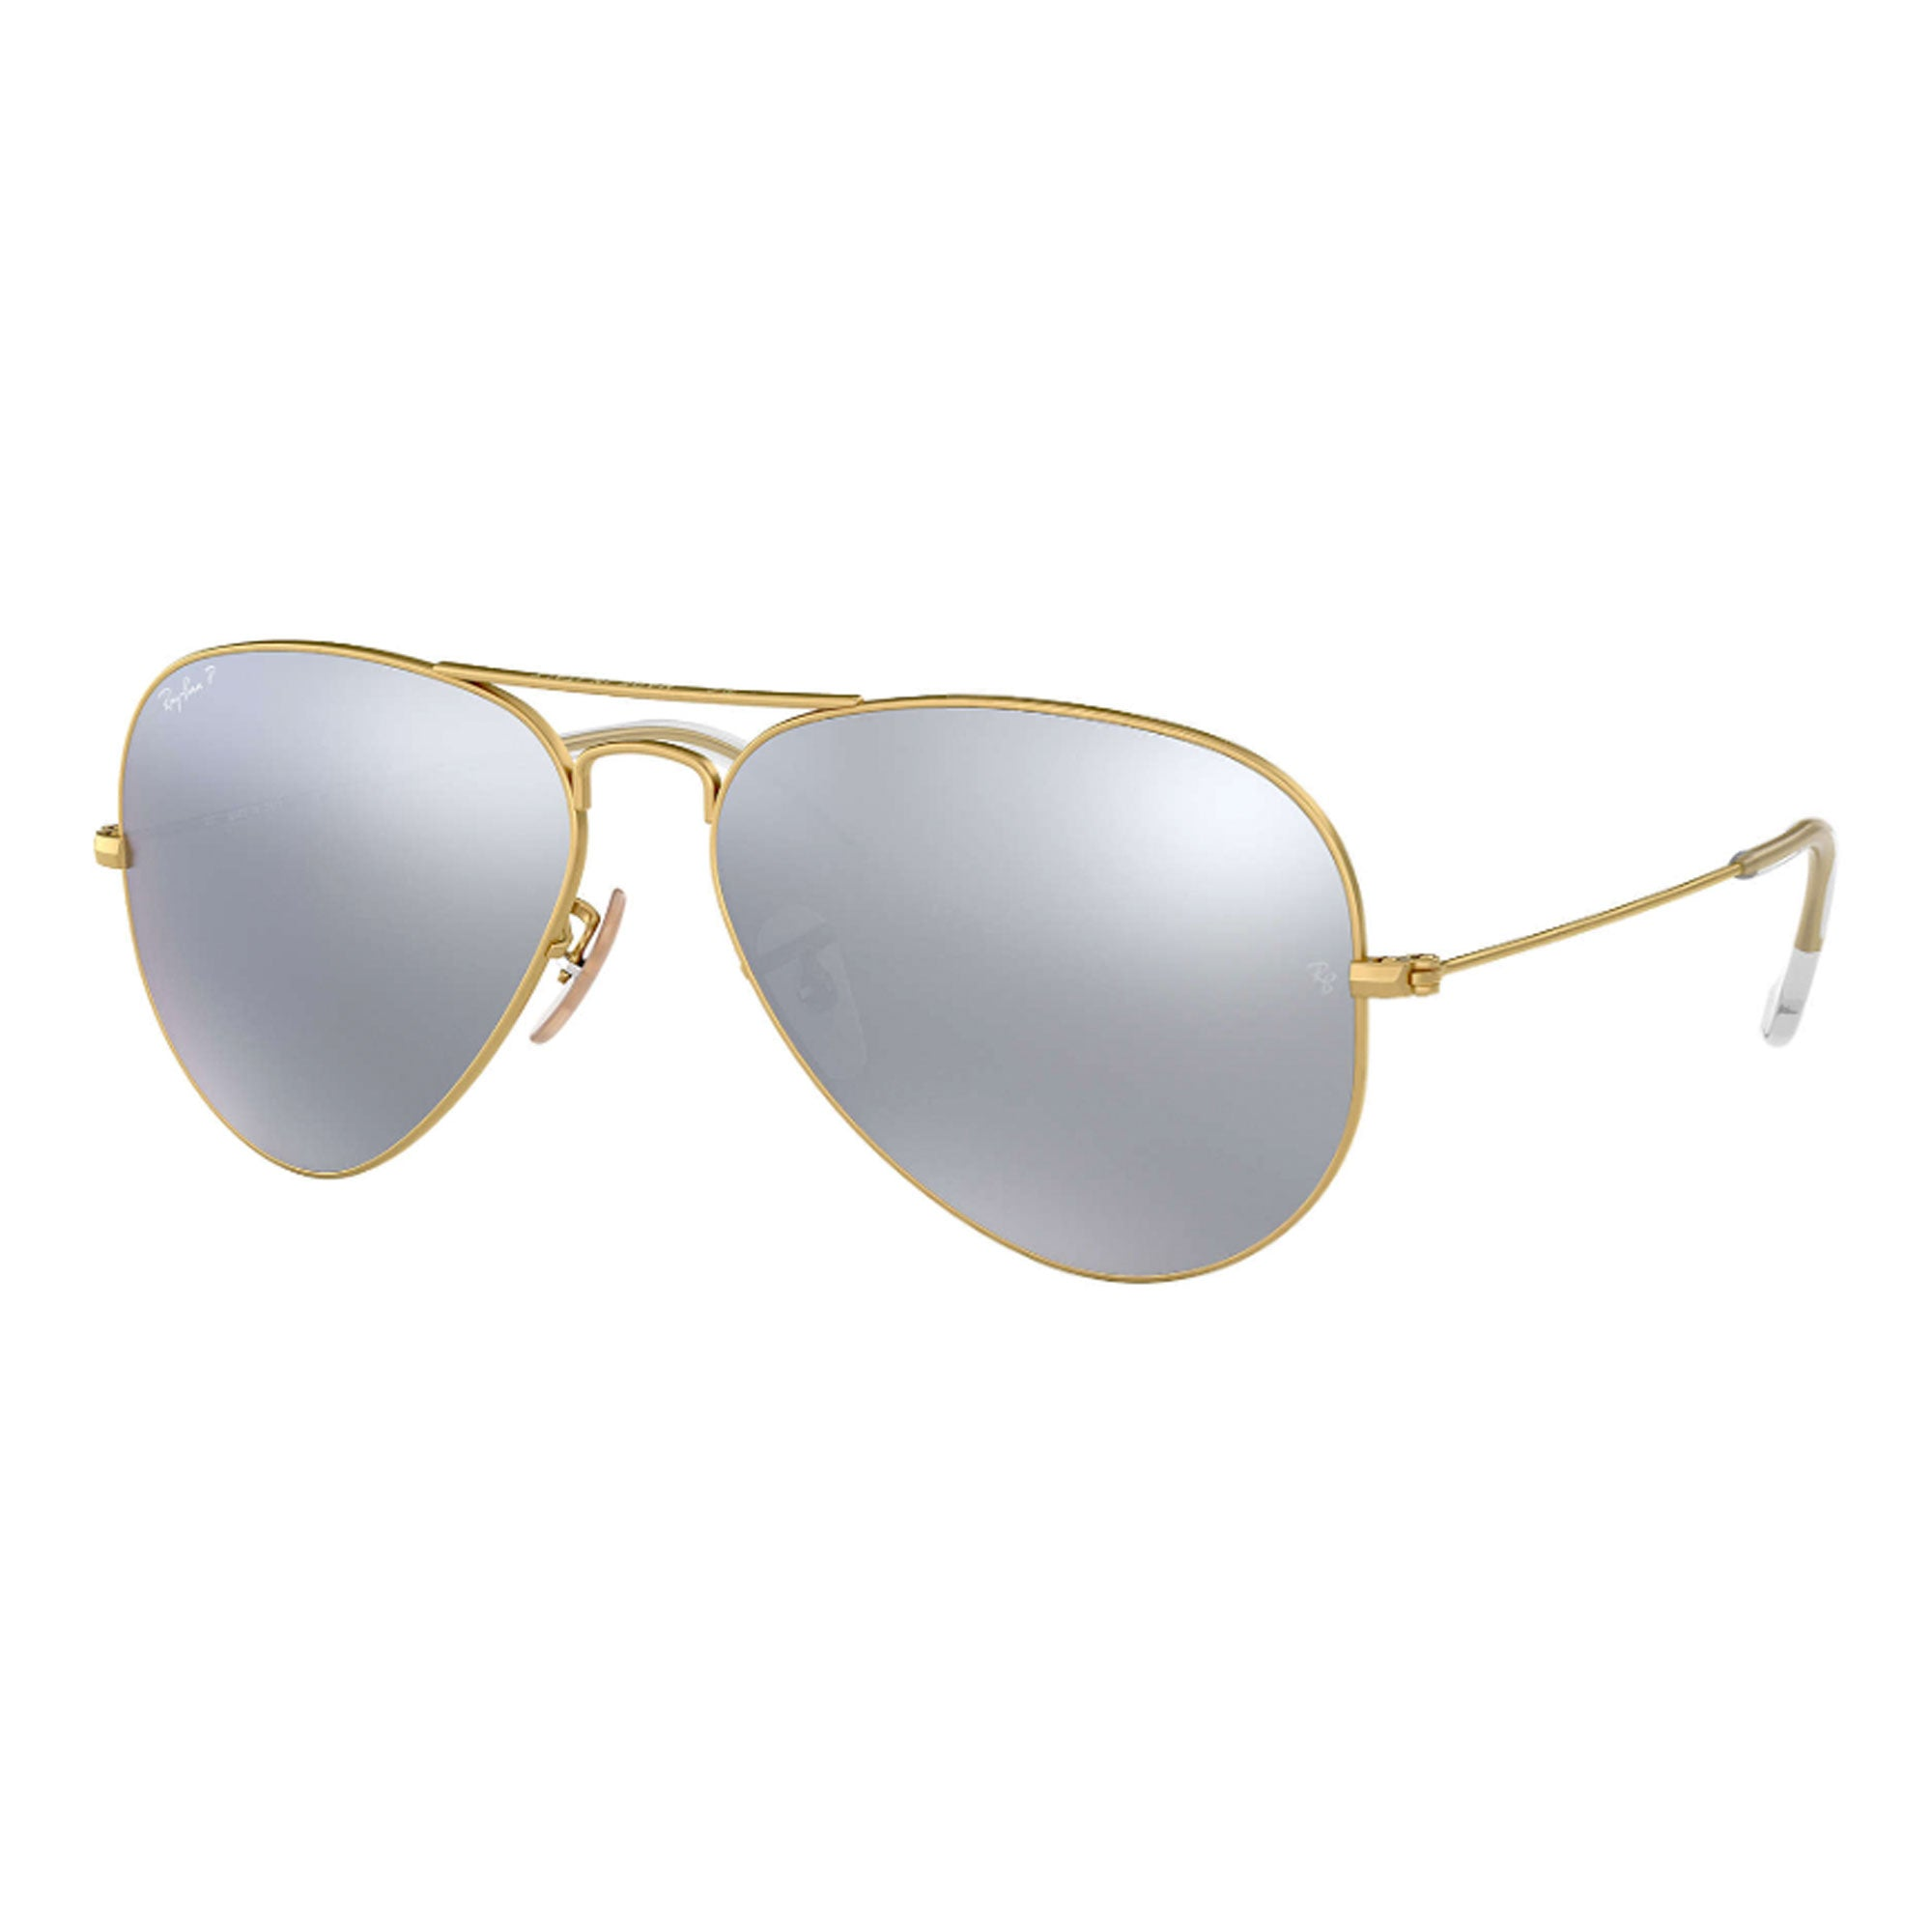 Ray-Ban Aviator Large Women's Sunglasses - Matte Gold/Dark Grey Mirror